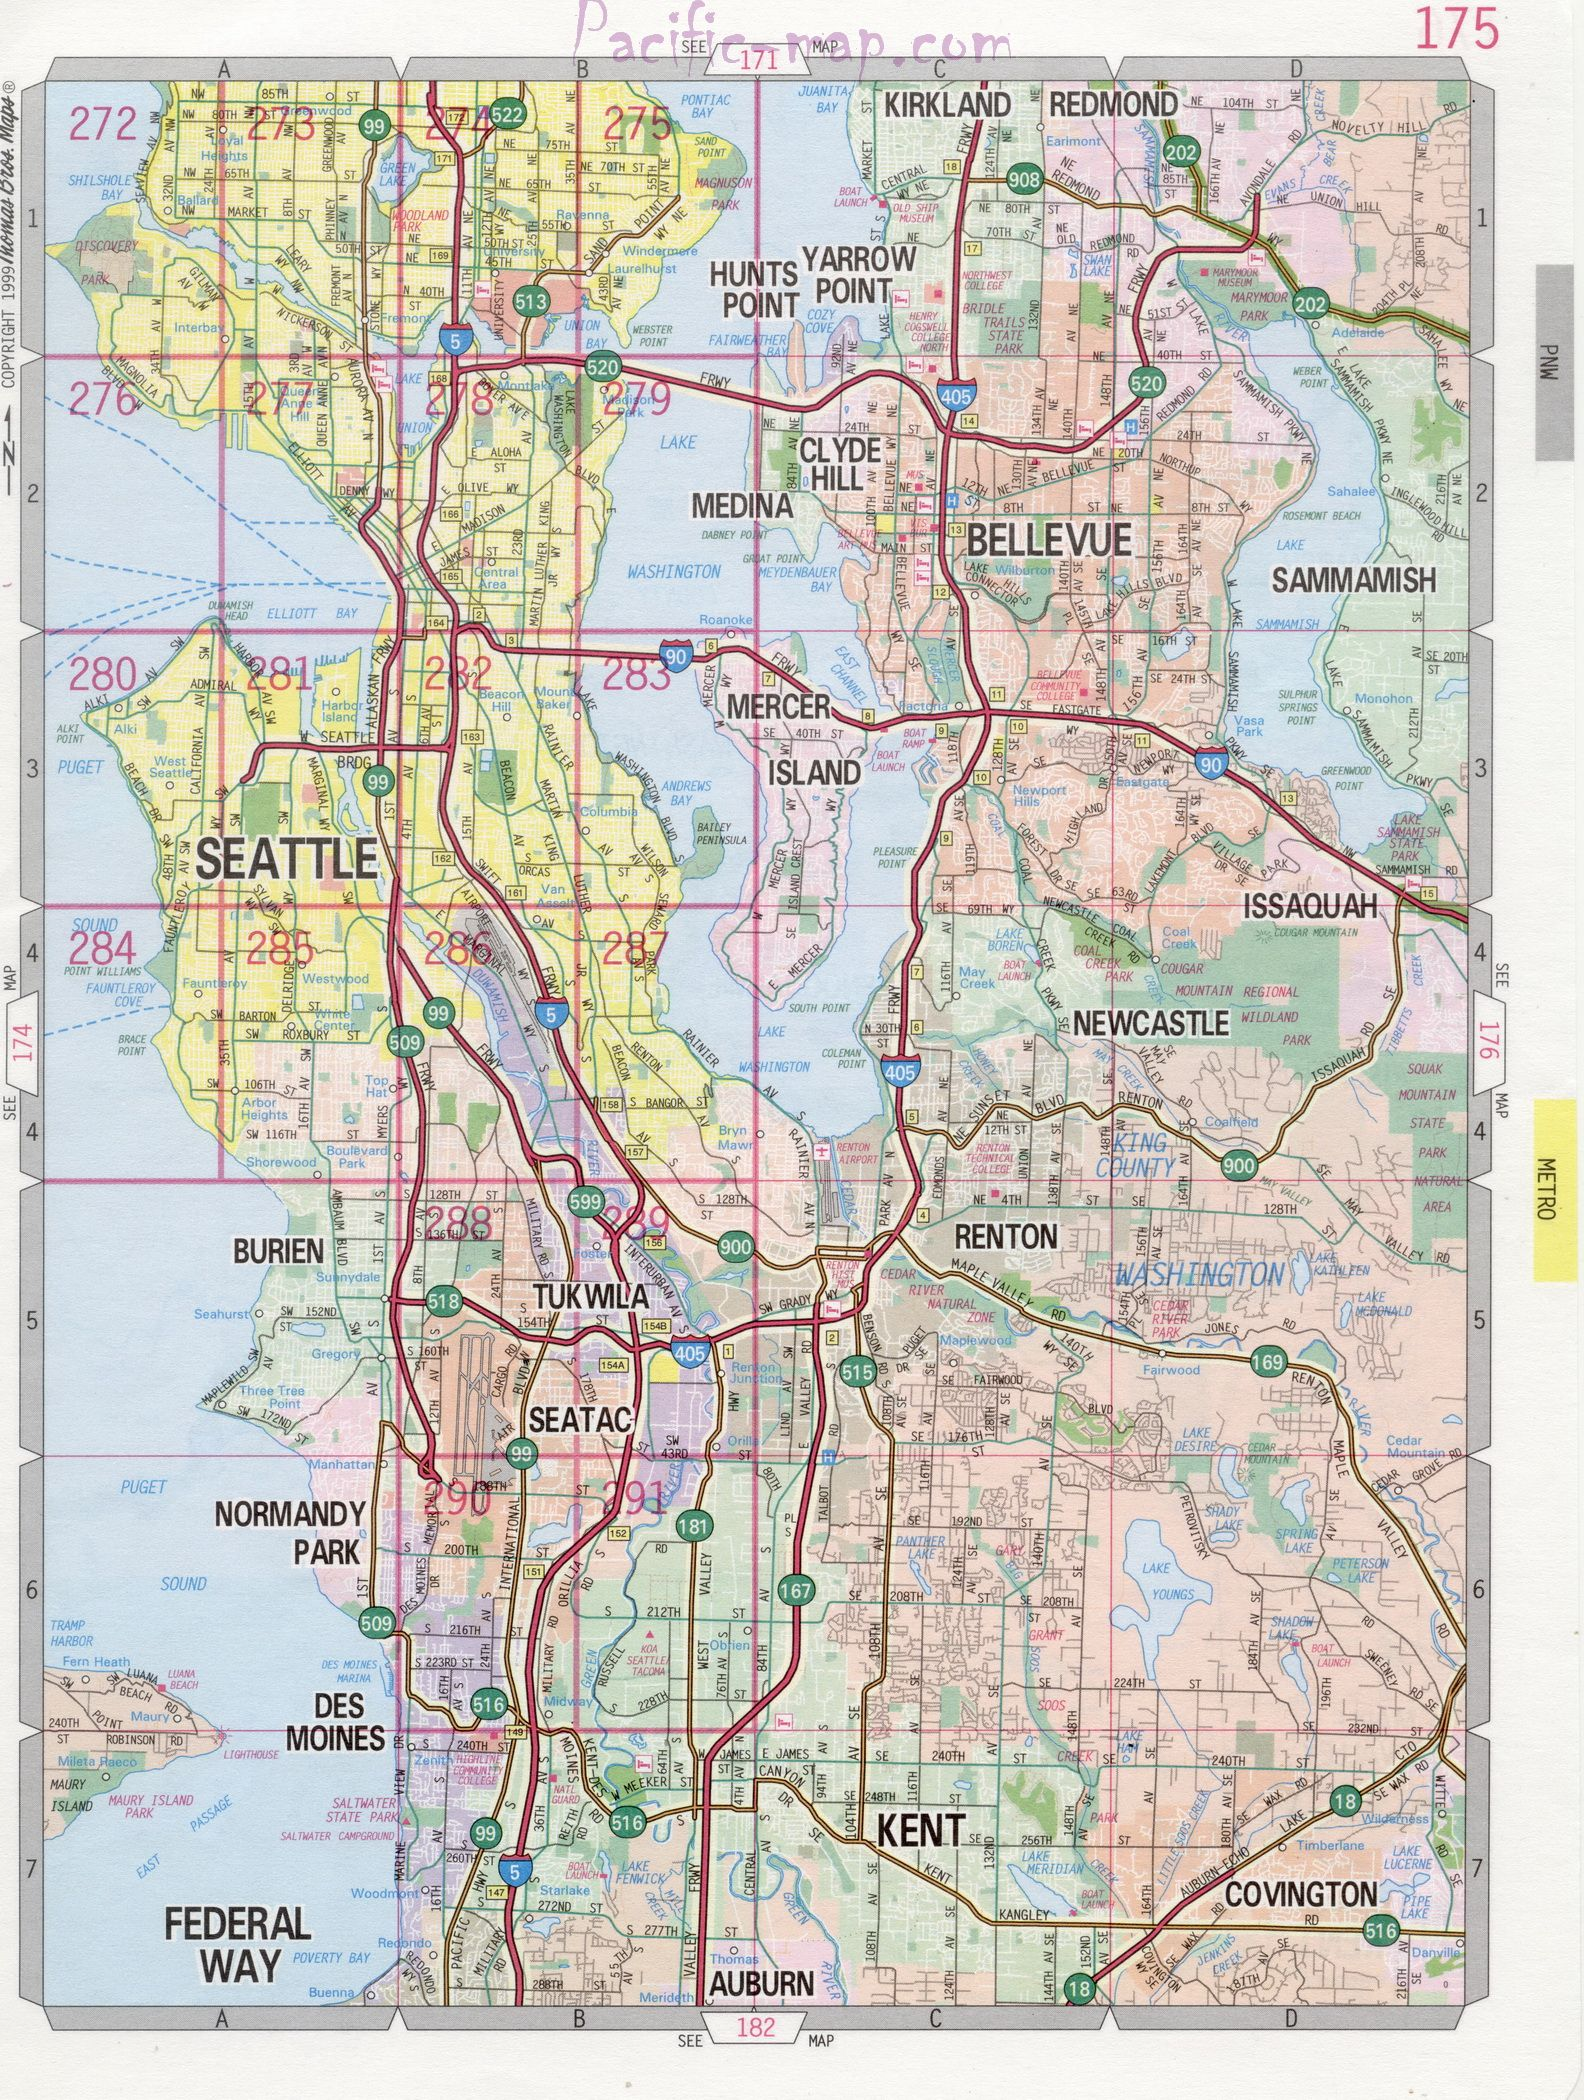 Seattle WA road map | ShadowRun | Pinterest | Map, Shadowrun and